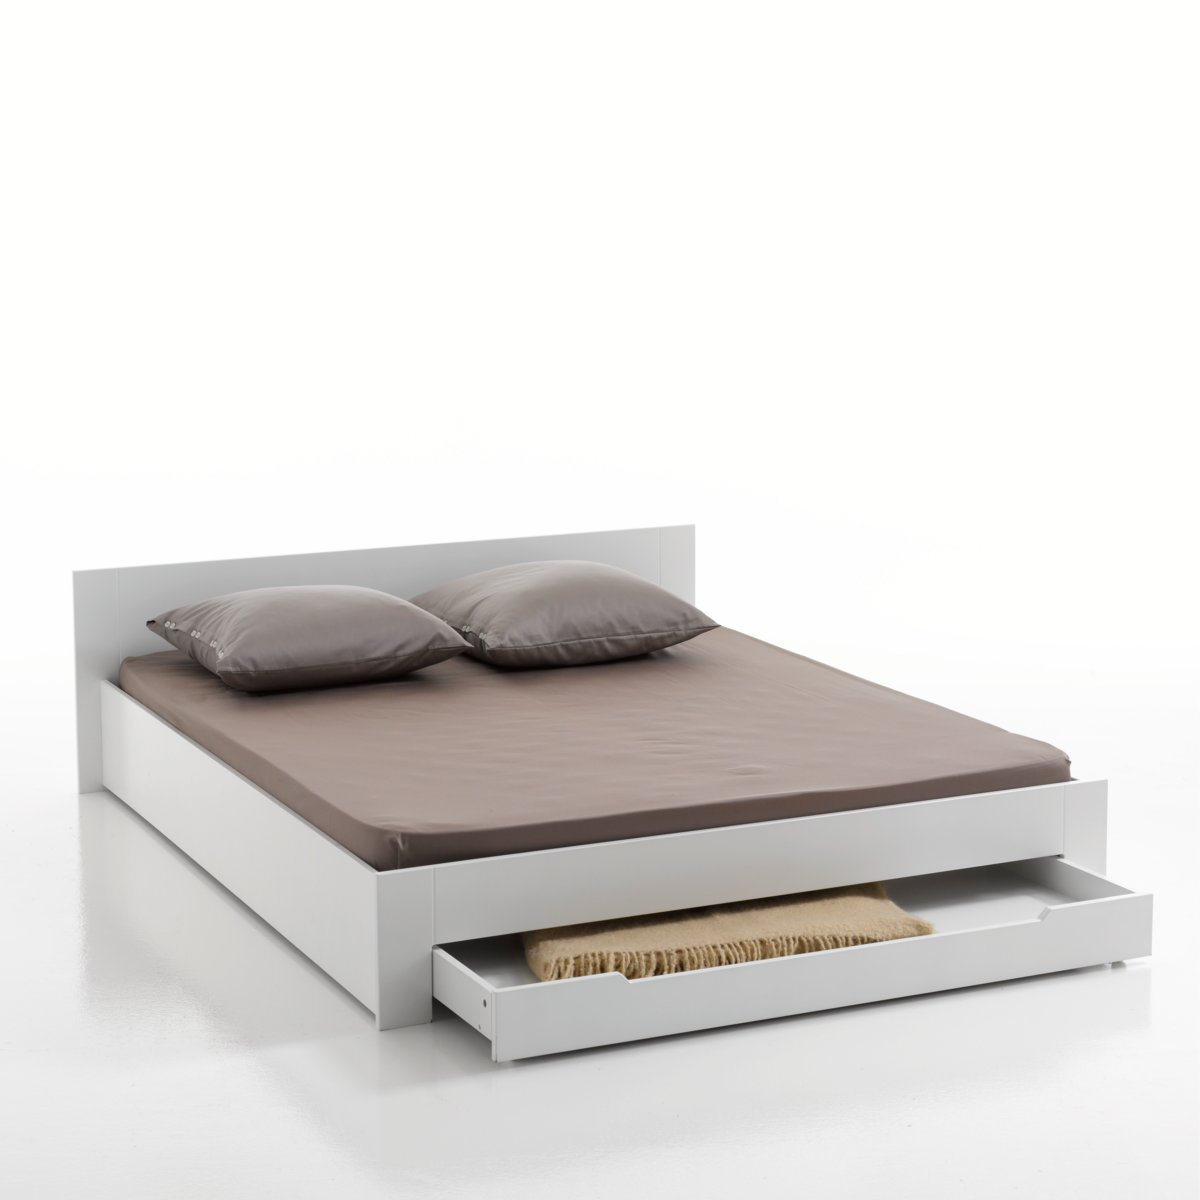 Lit la redoute lit 2 places crawley avec sommier et for Lit escamotable la redoute